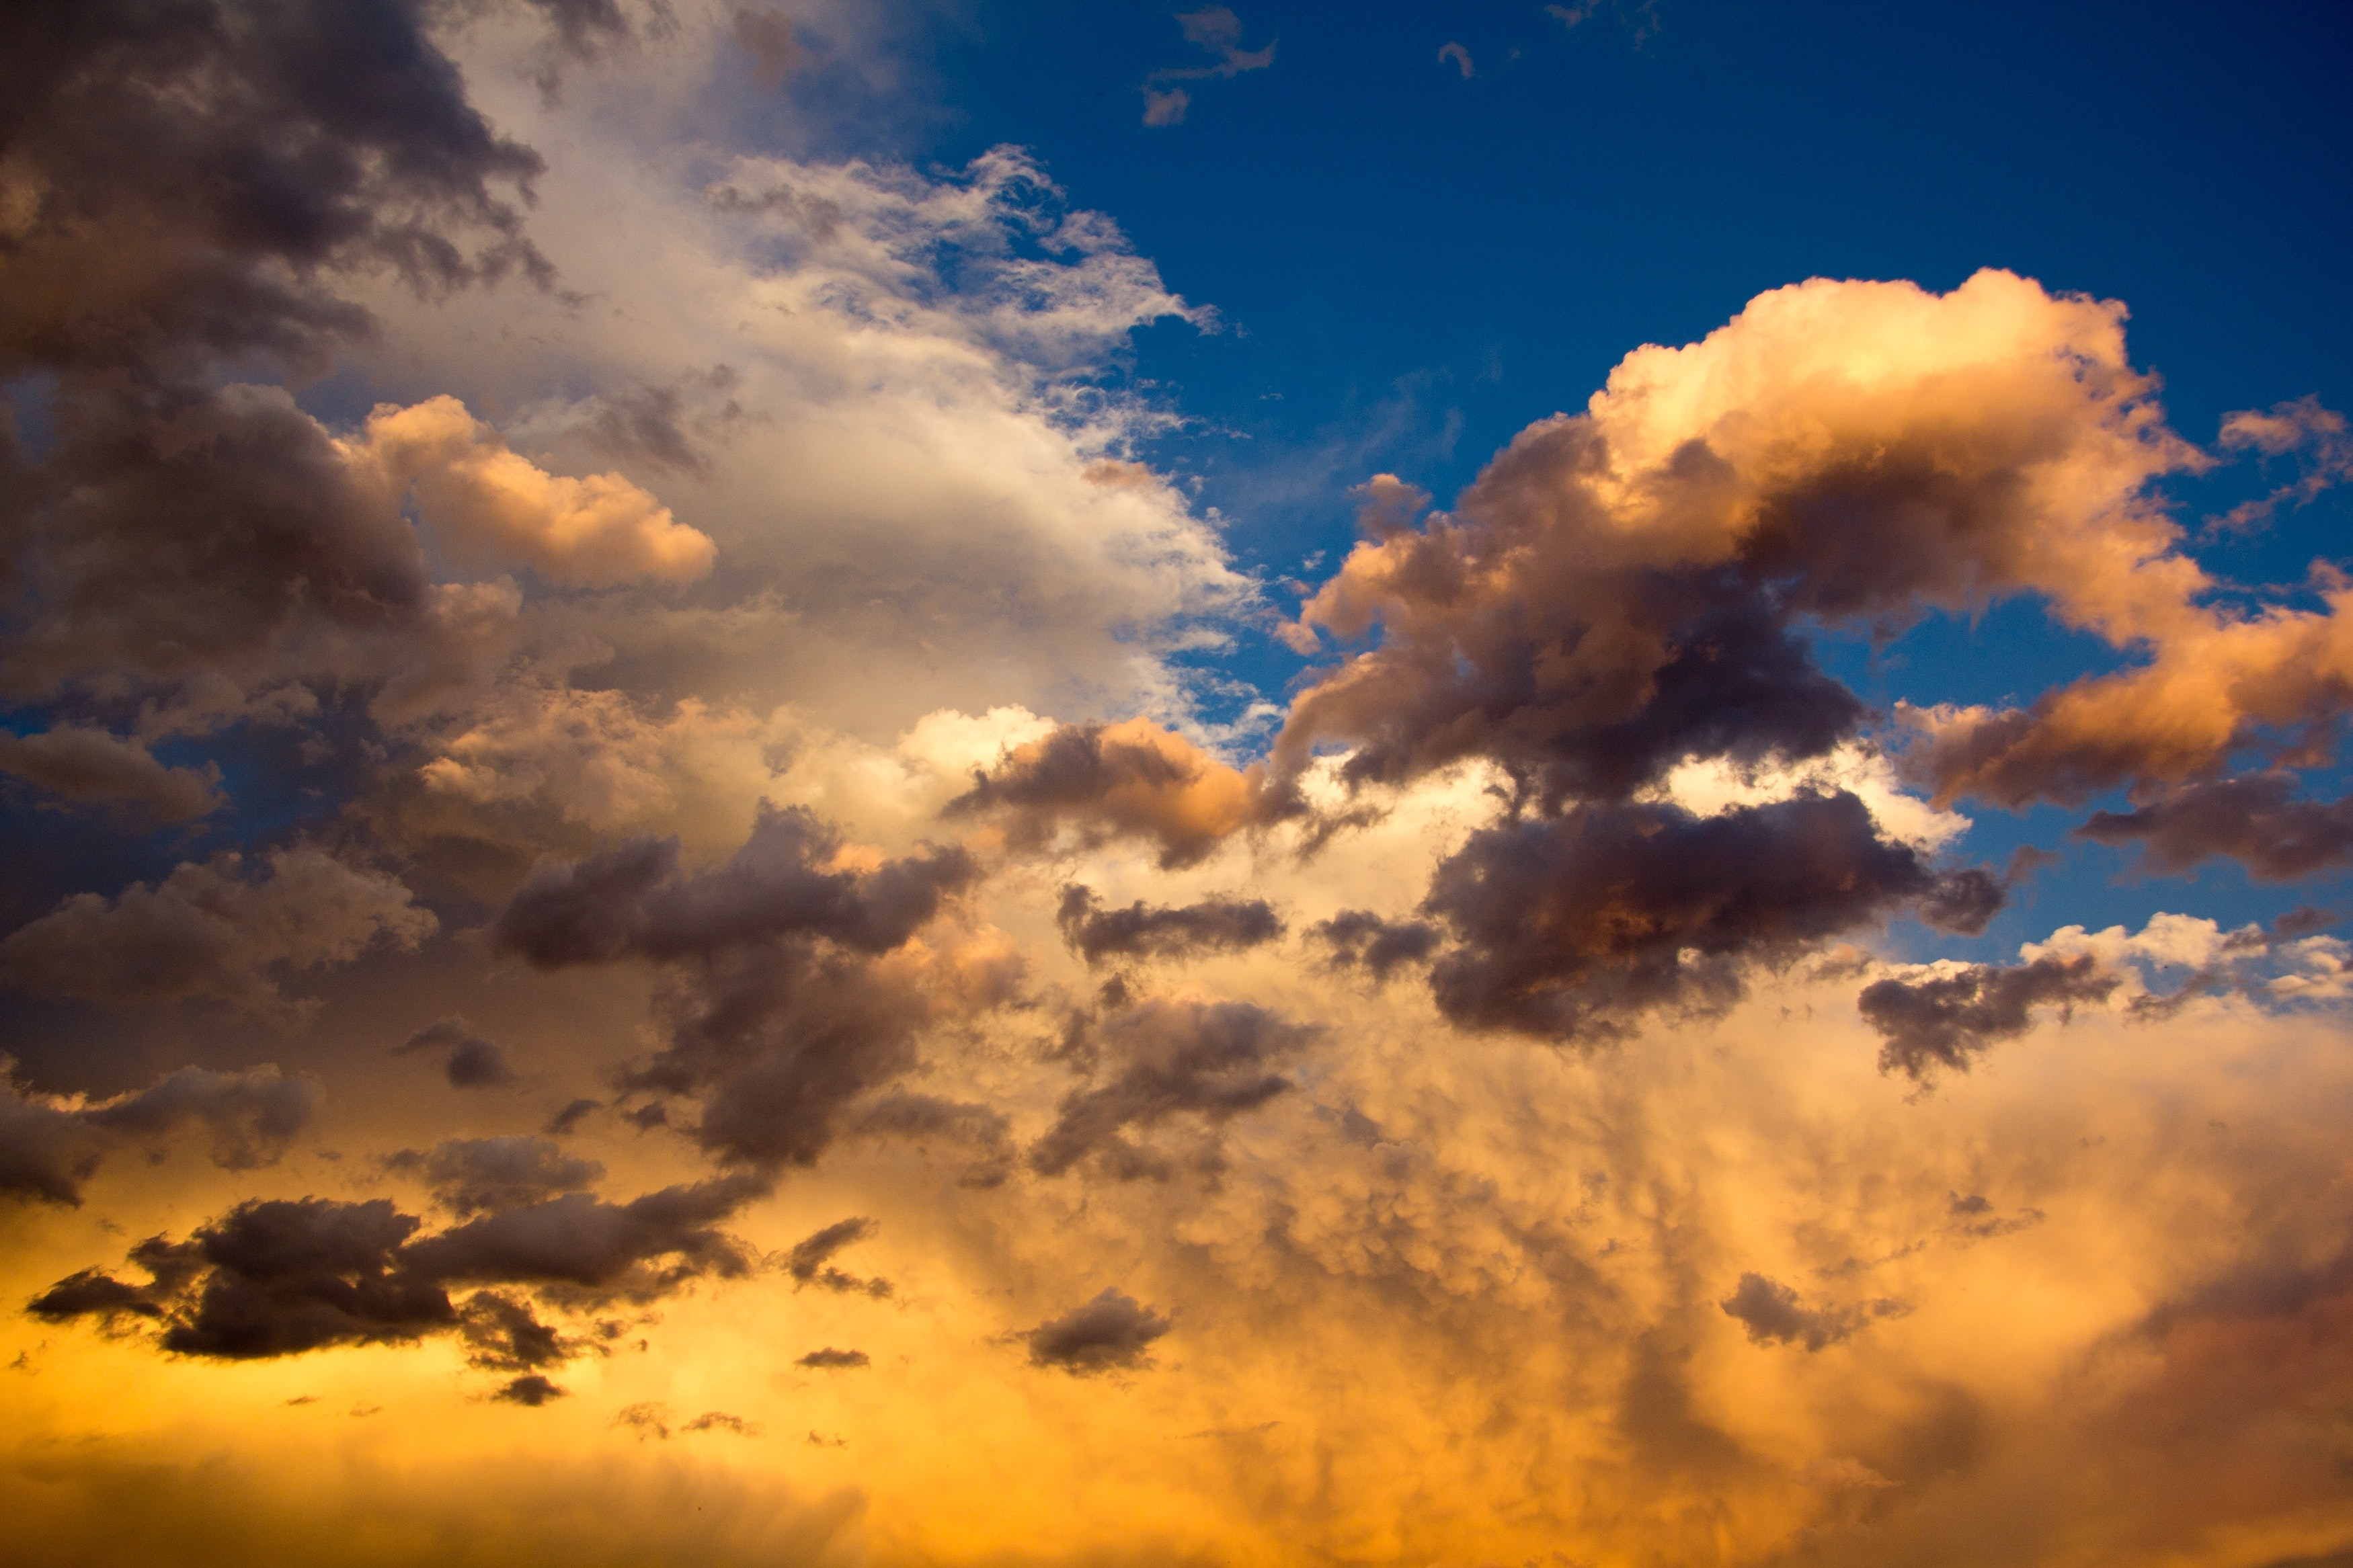 Donate Your Car >> Nimbus Clouds on Clear Blue Sky during Golden Hour · Free ...